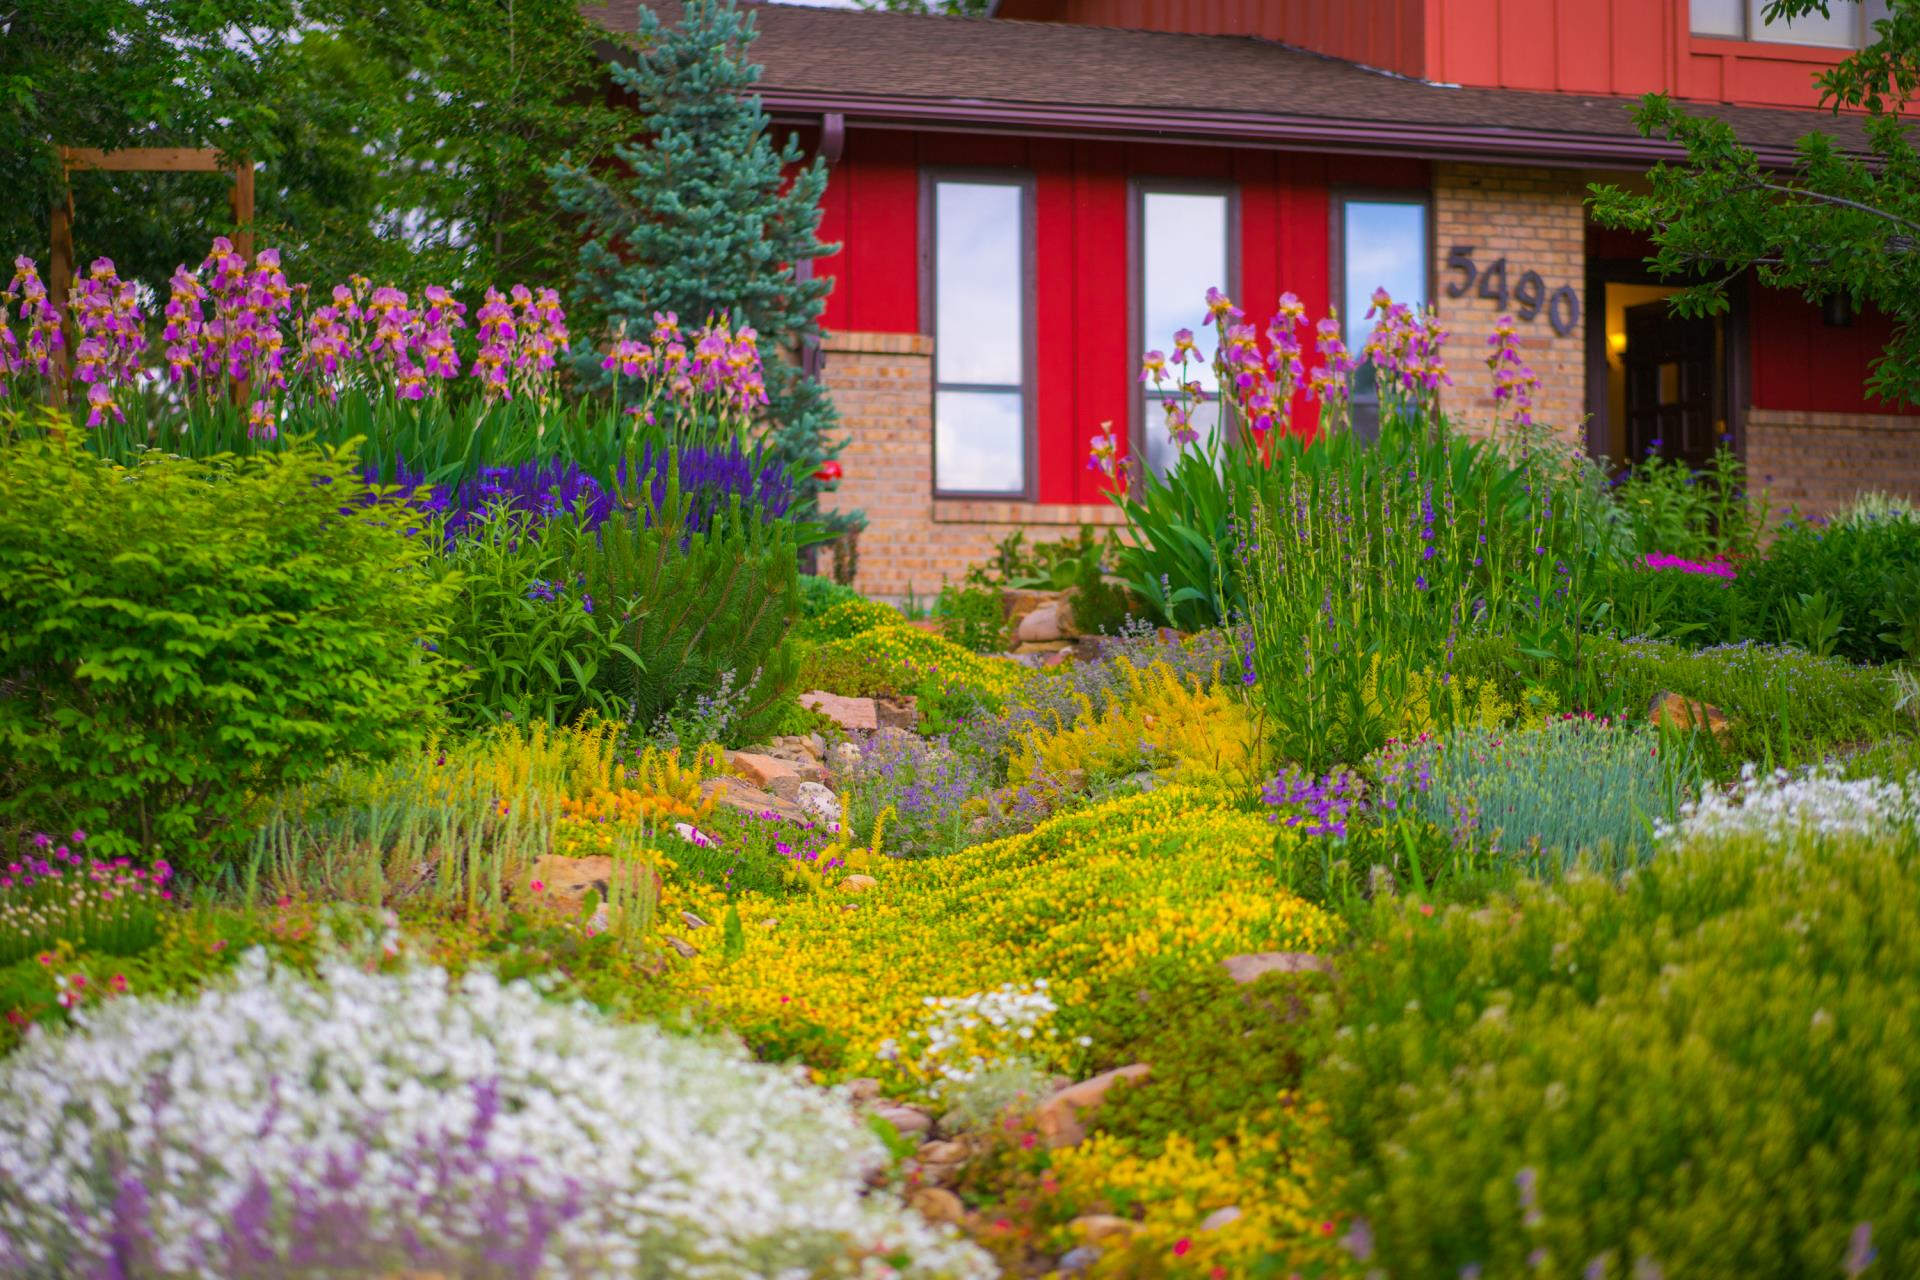 City of Loveland News Releases Garden in a Box Beautiful